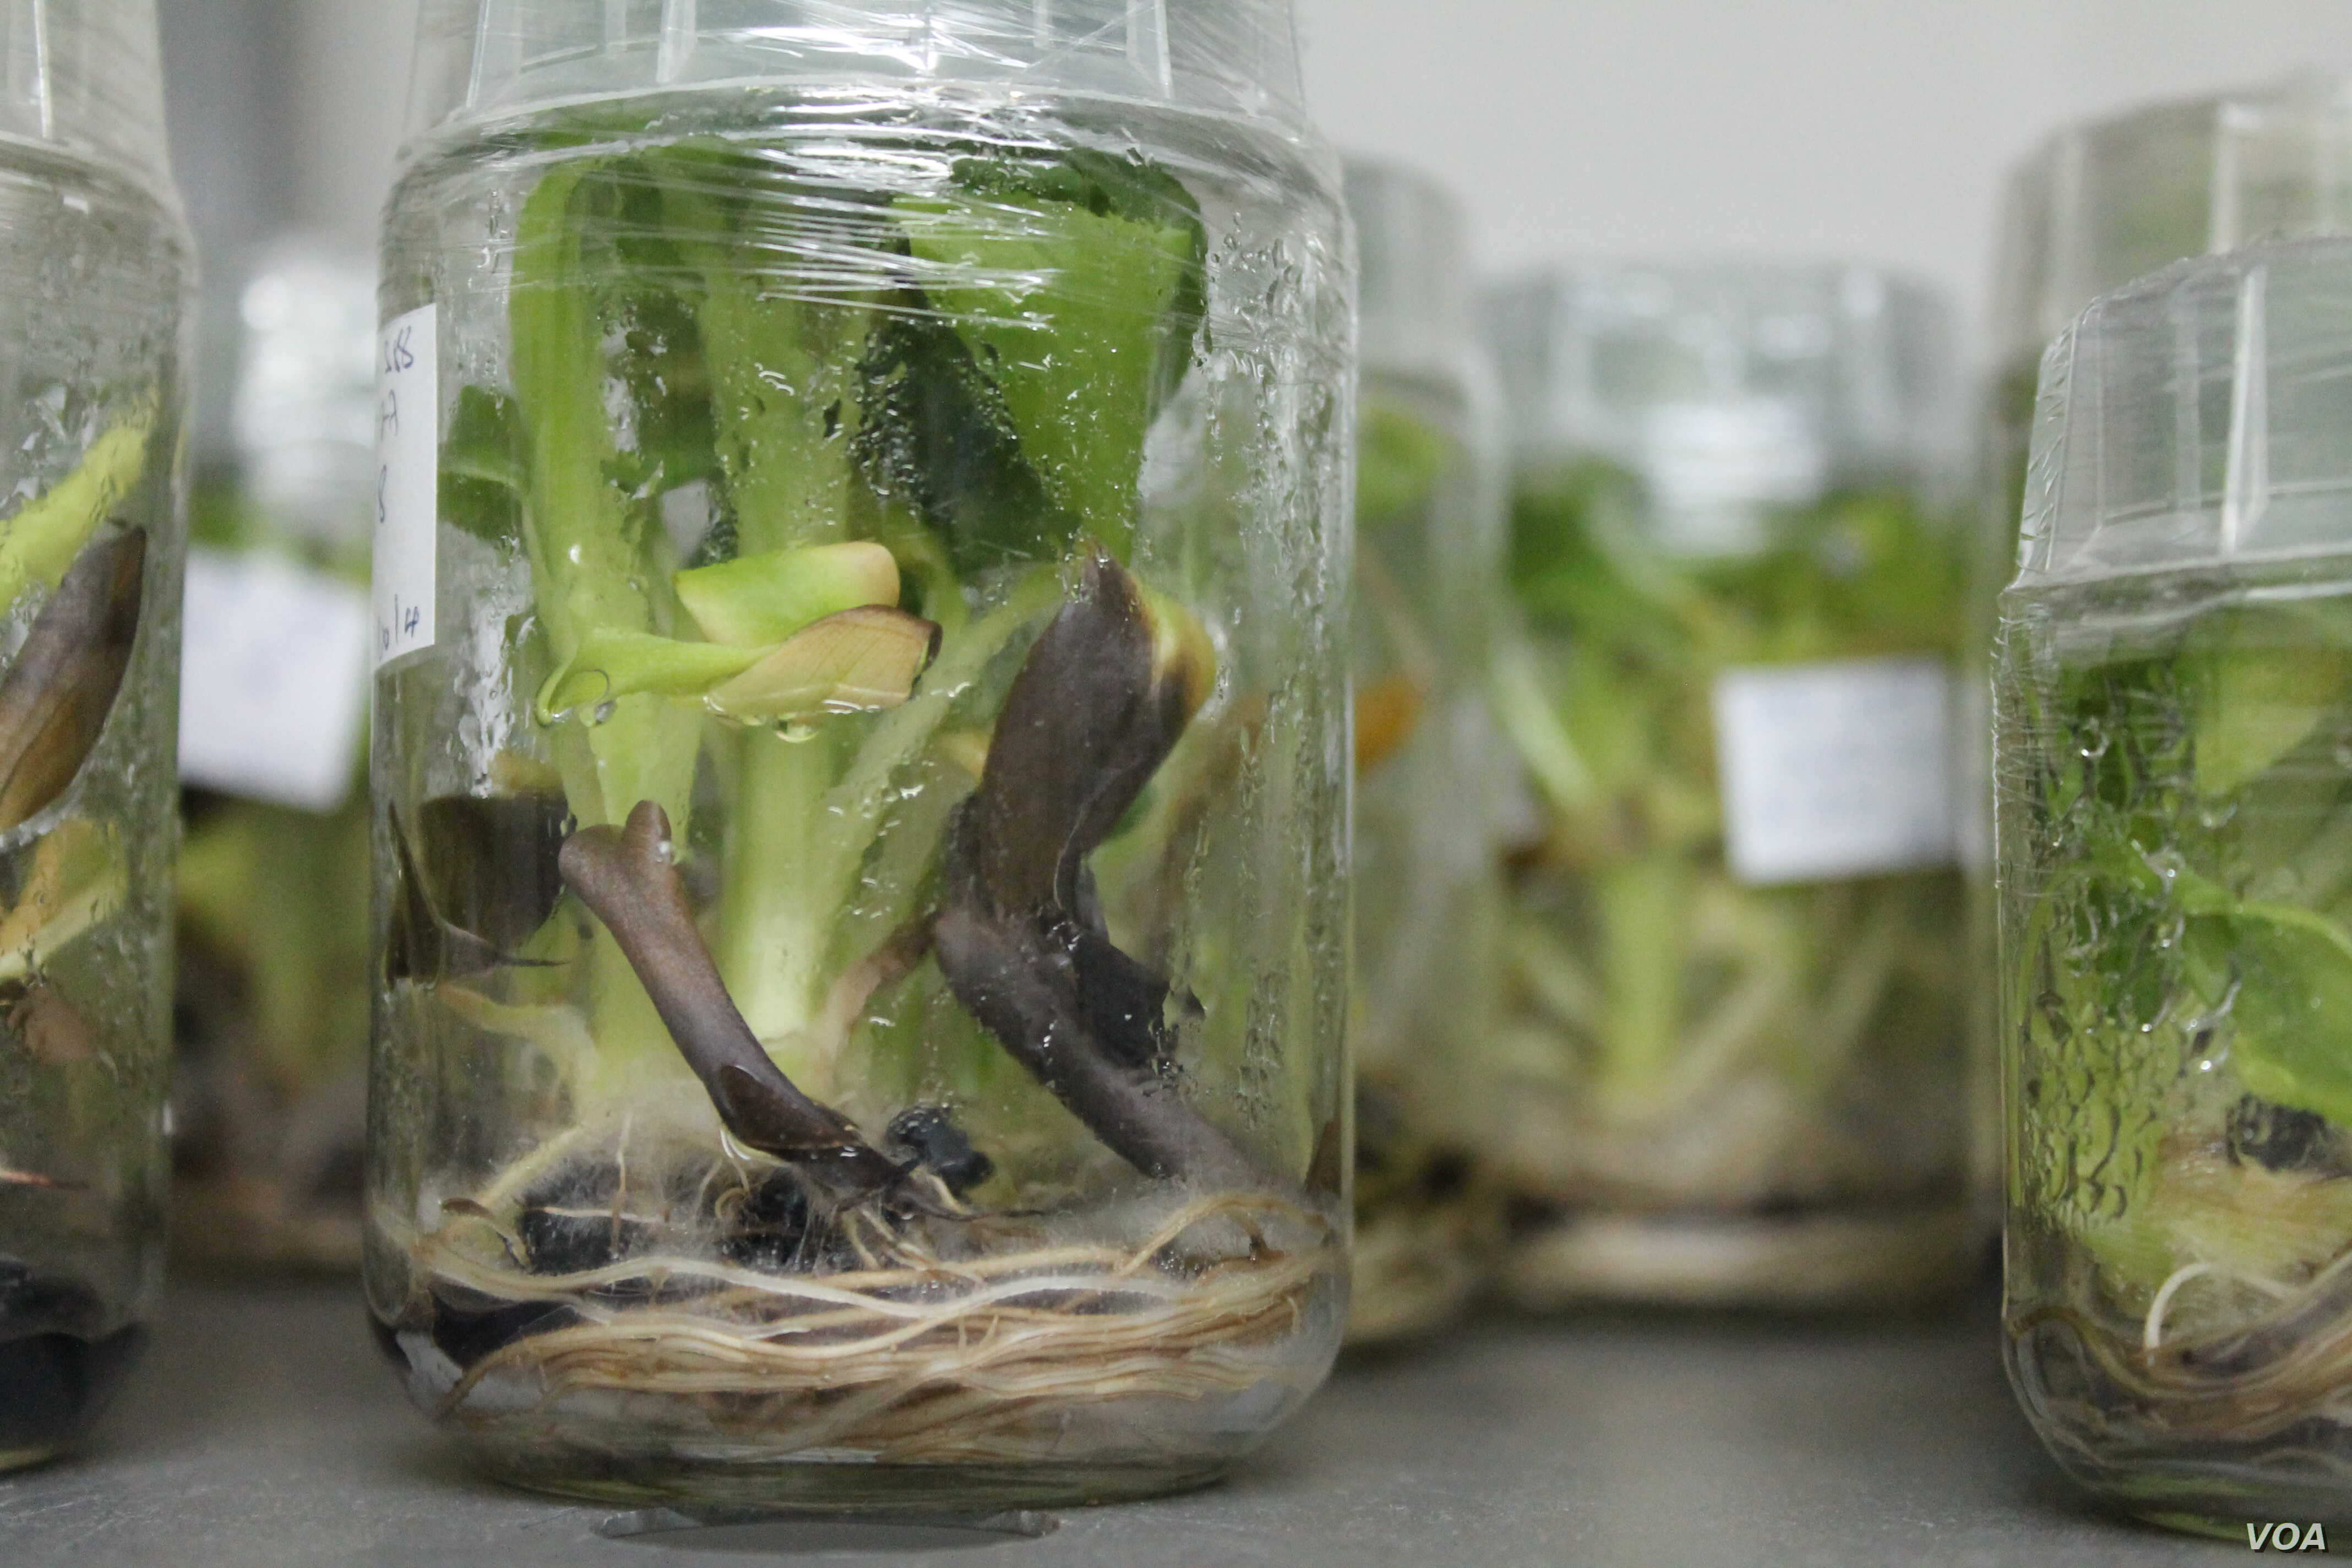 The lab at the National Agricultural Research Organization grows disease-resistant genetically modified bananas, Uganda, Sept. 13, 2013. (Hilary Heuler for VOA)